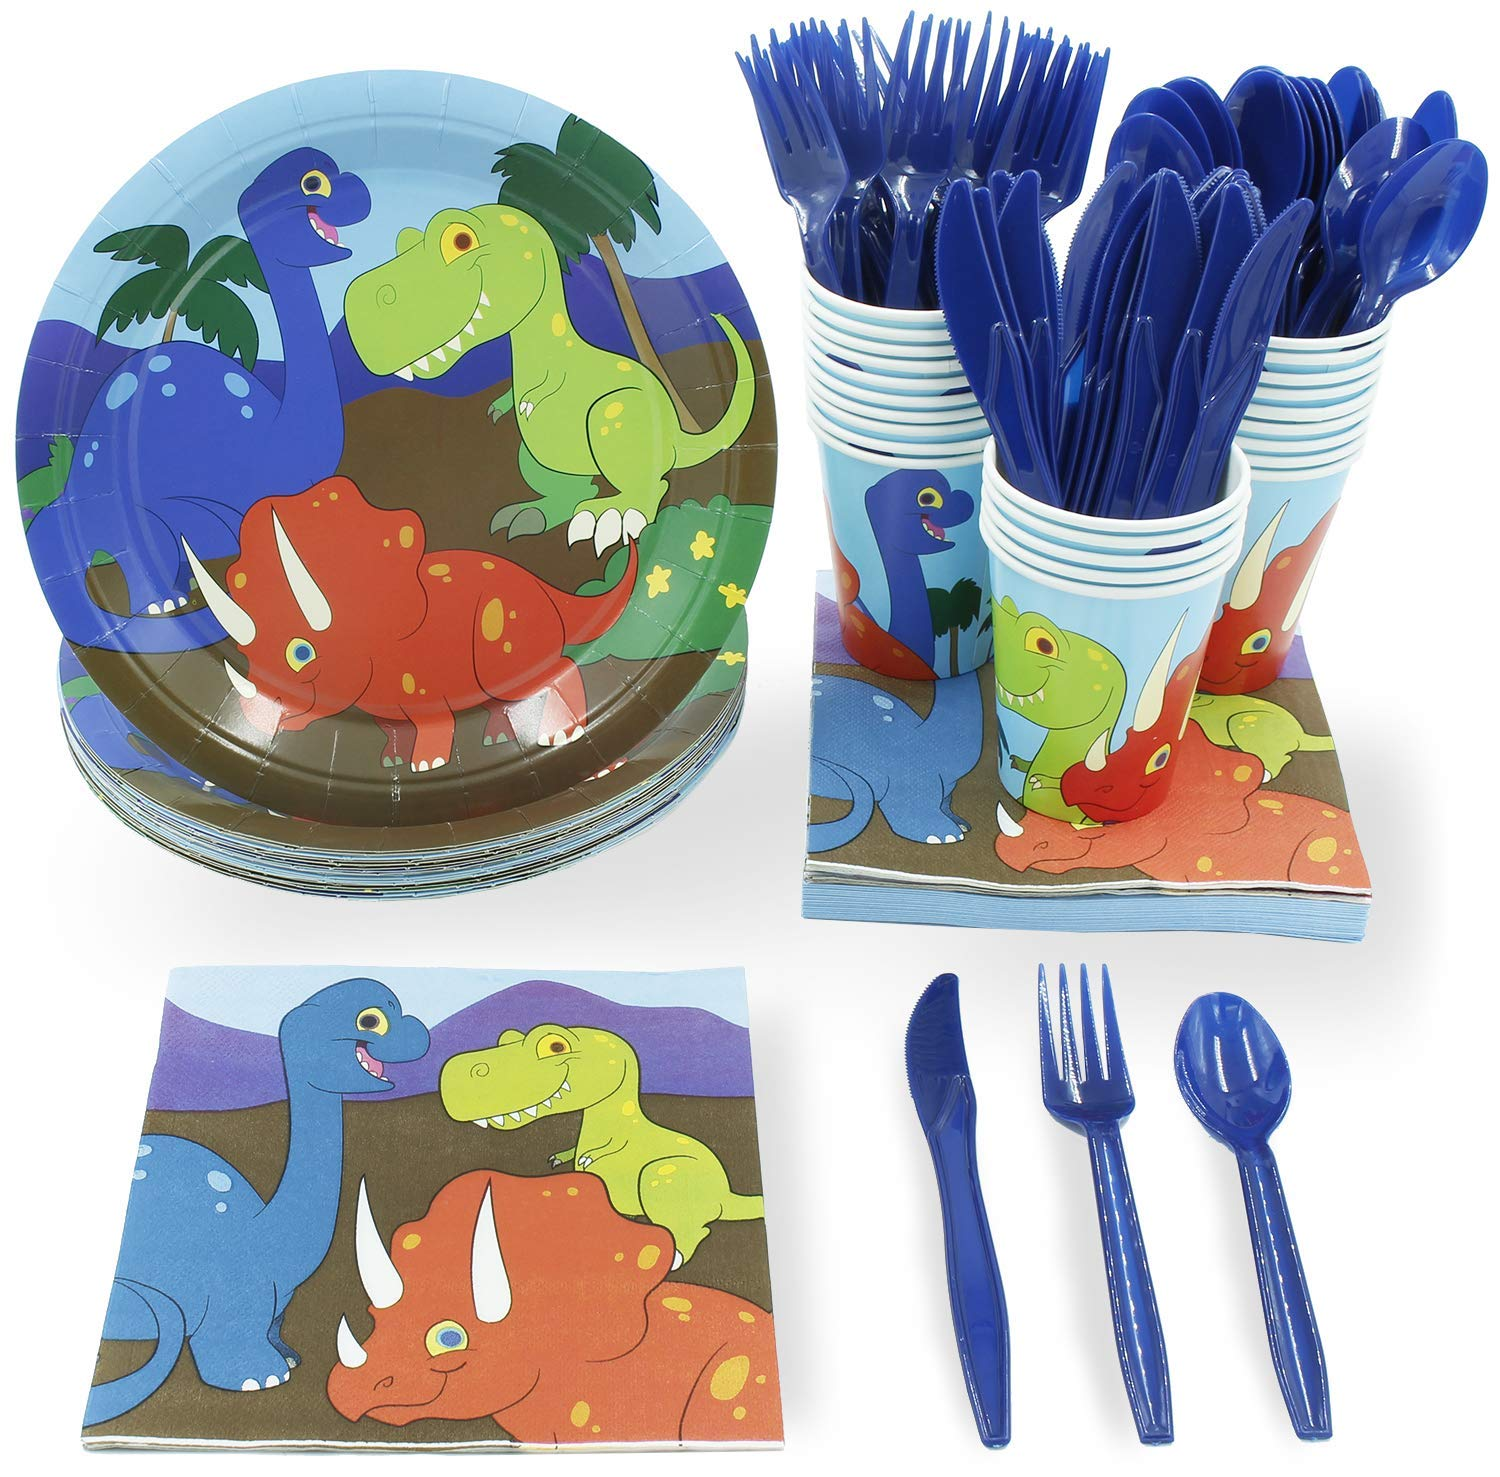 Dino Fossil Skeleton Design Napkins Serves 24 Spoons Disposable Dinnerware Set Includes Plastic Knives Forks Cups Paper Plates Dinosaur Themed Party Supplies for Kids Birthdays